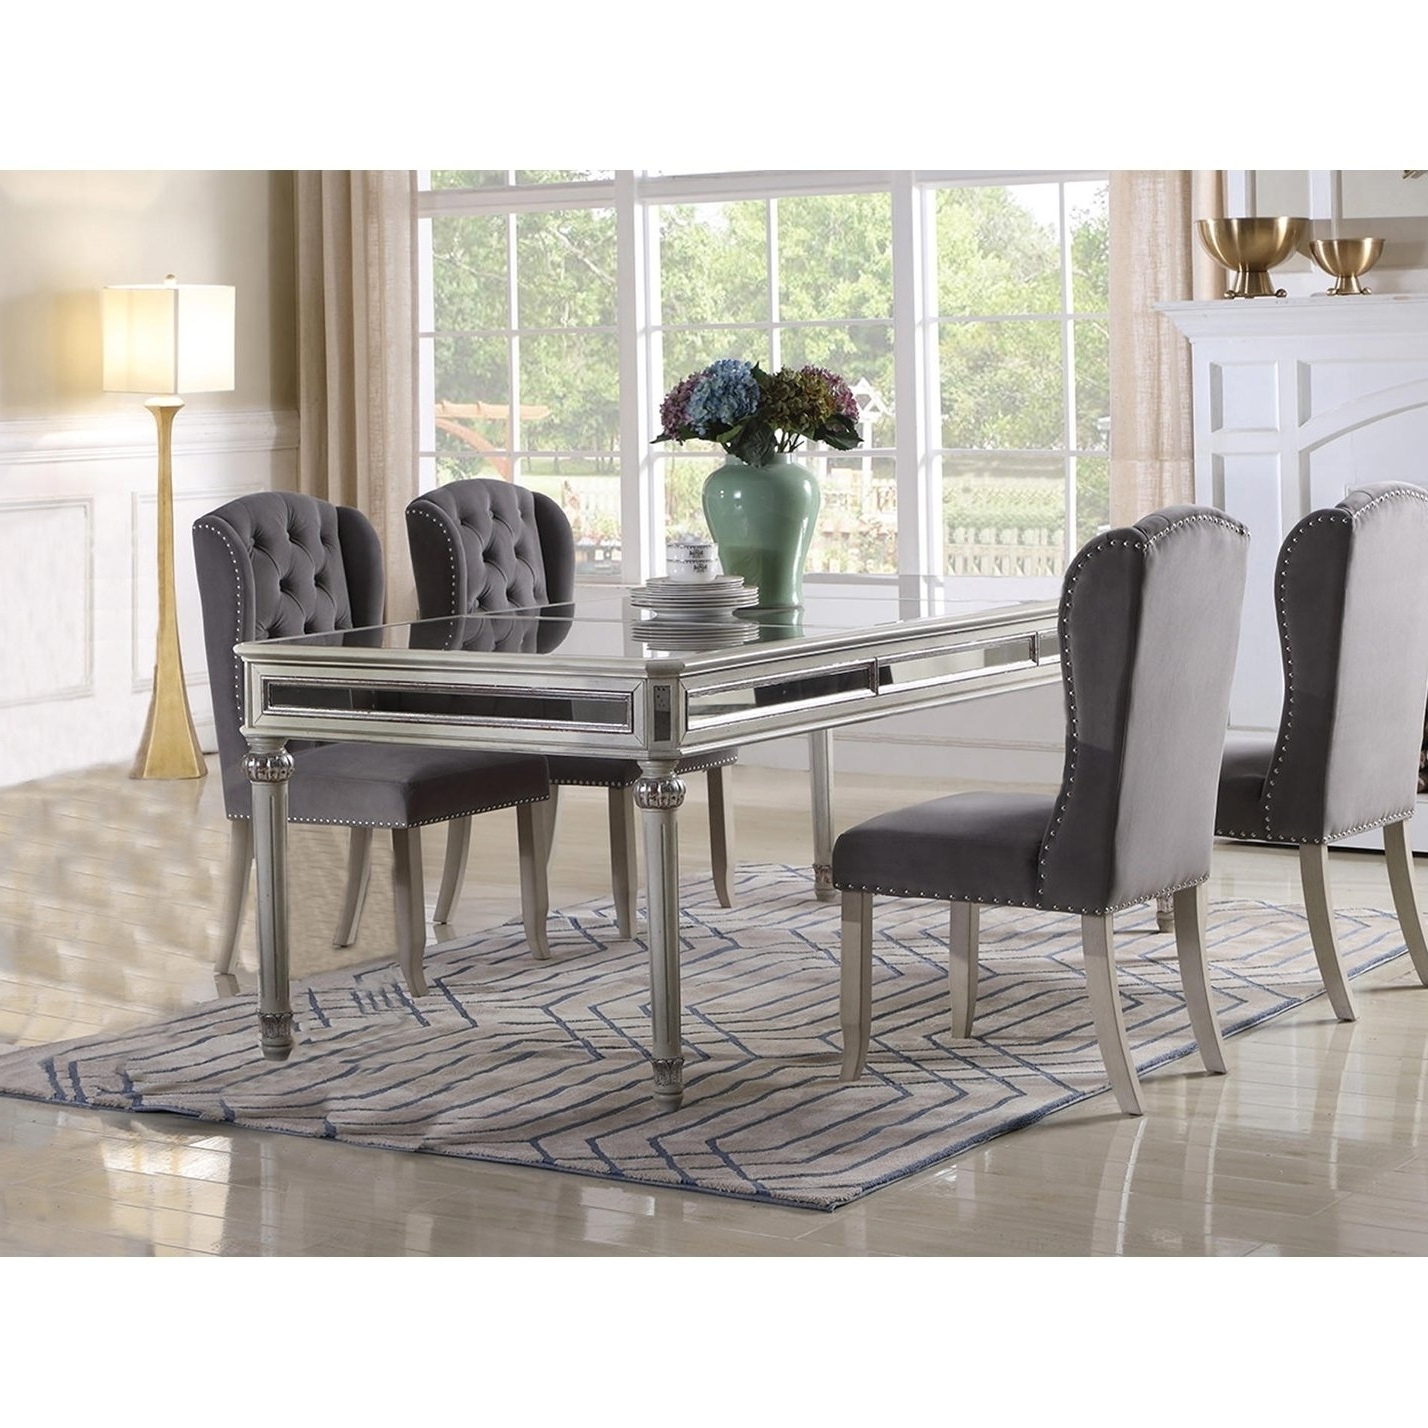 Shop Best Master Furniture Antique Cream Mirrored Dining Table With Regard To Preferred Mirrored Dining Tables (View 19 of 25)